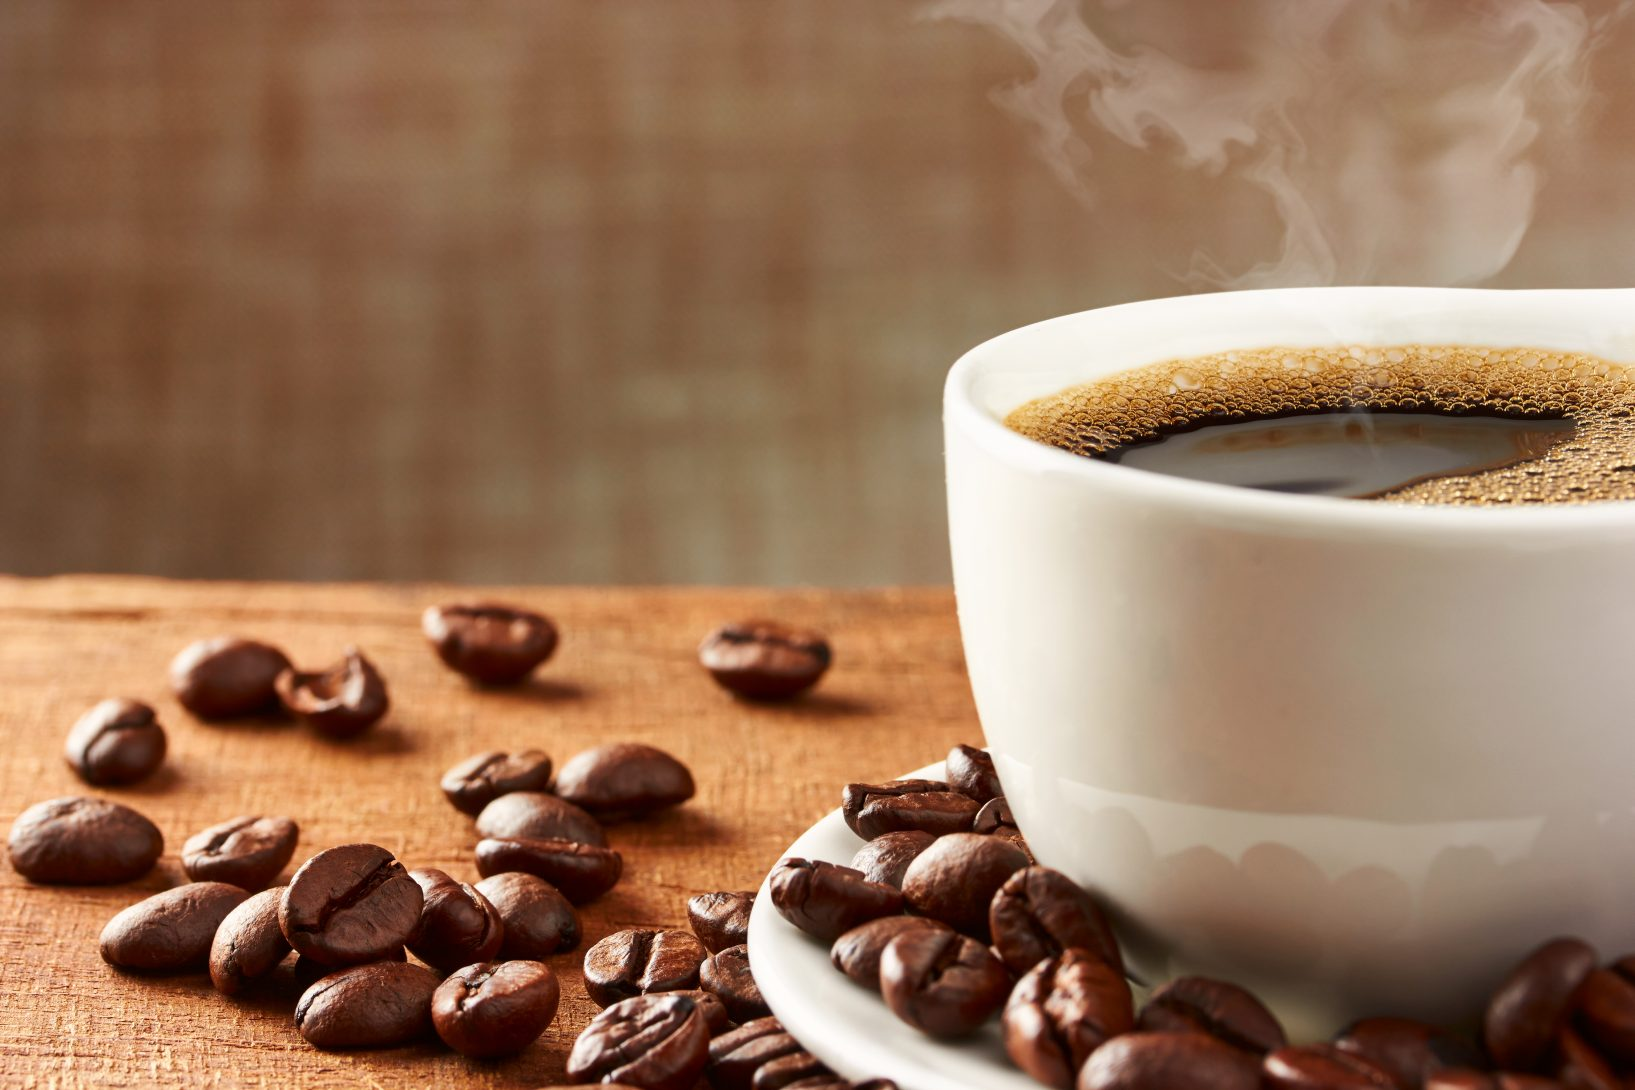 U.A.E.'s Coffee Market Is Brewing Thanks To Robust Consumer Demand